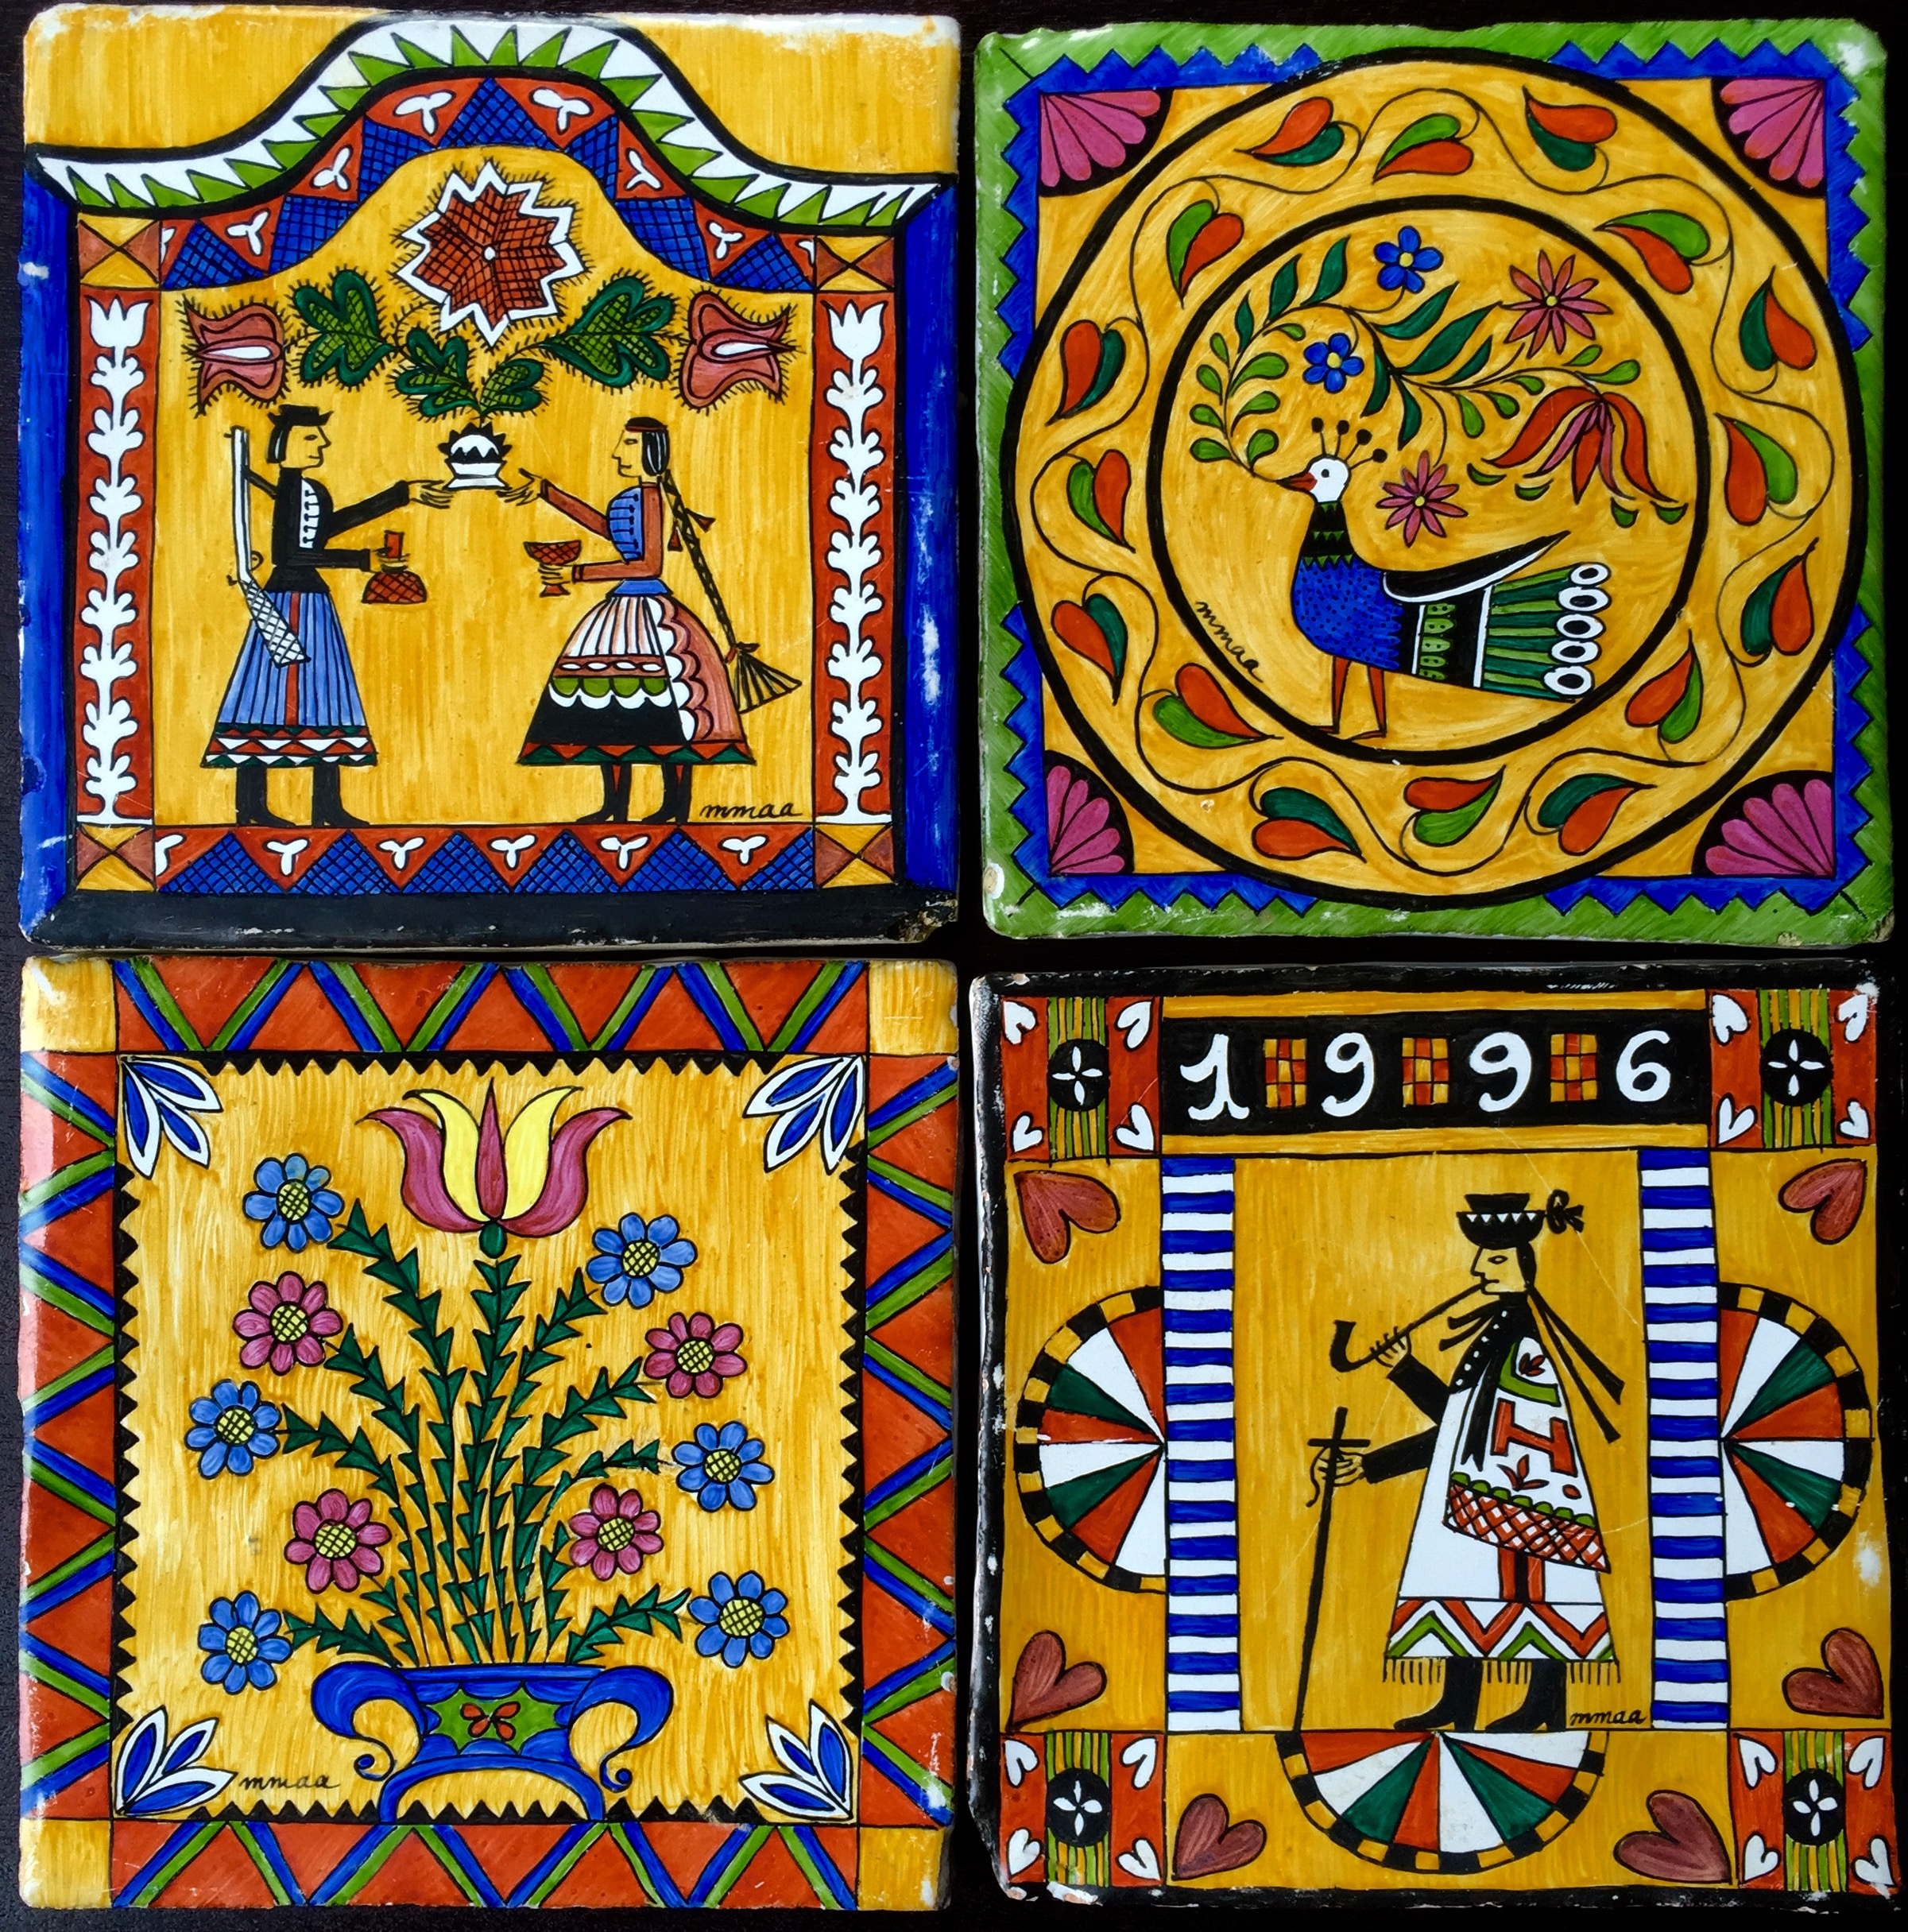 Hungarian Folk (small tiles)  - 5 x 5 in, 13 x 13 cm each